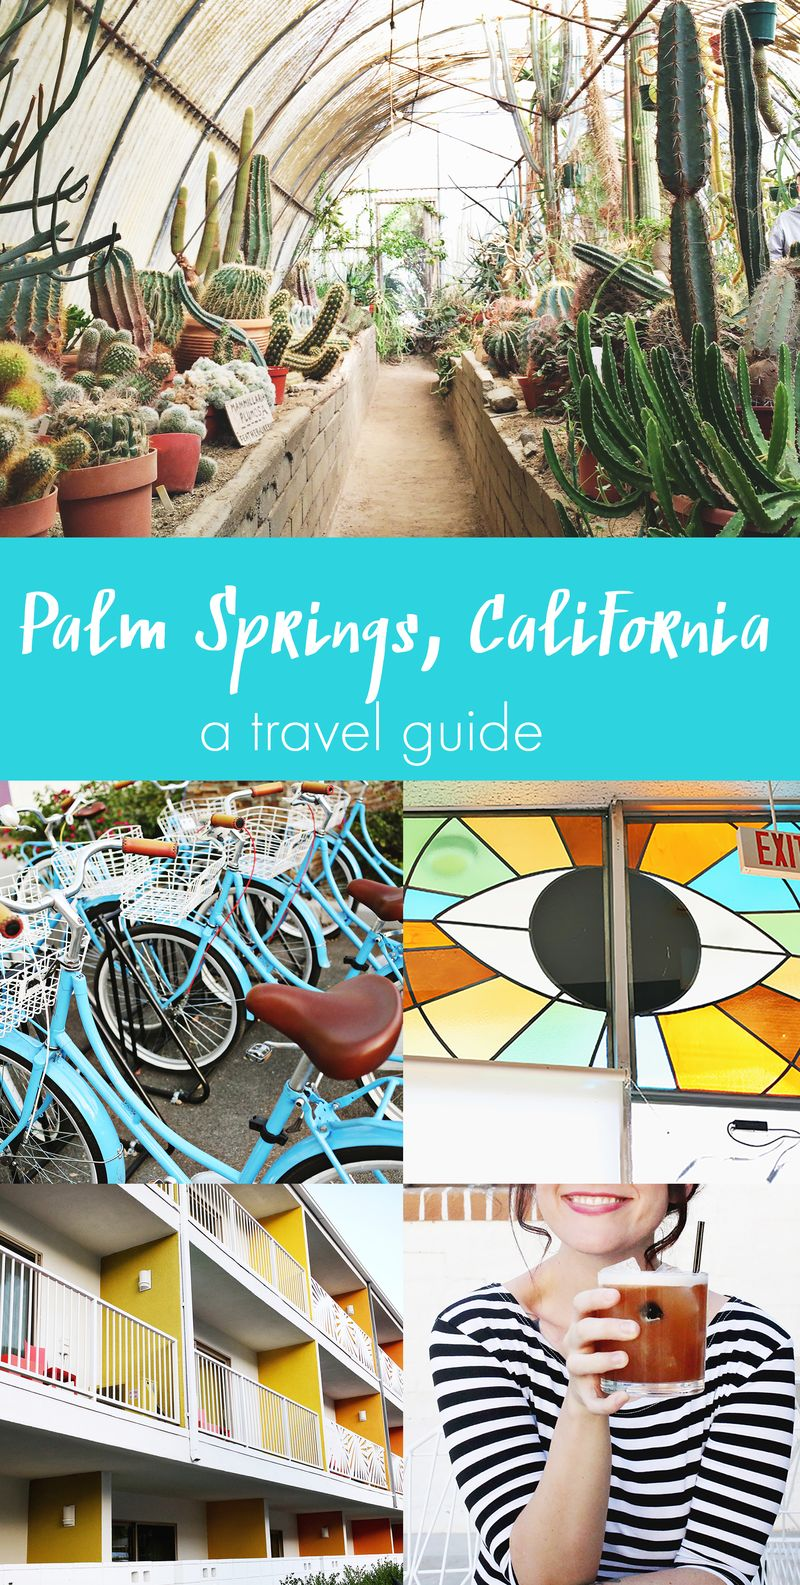 Palm Springs, California Travel Guide